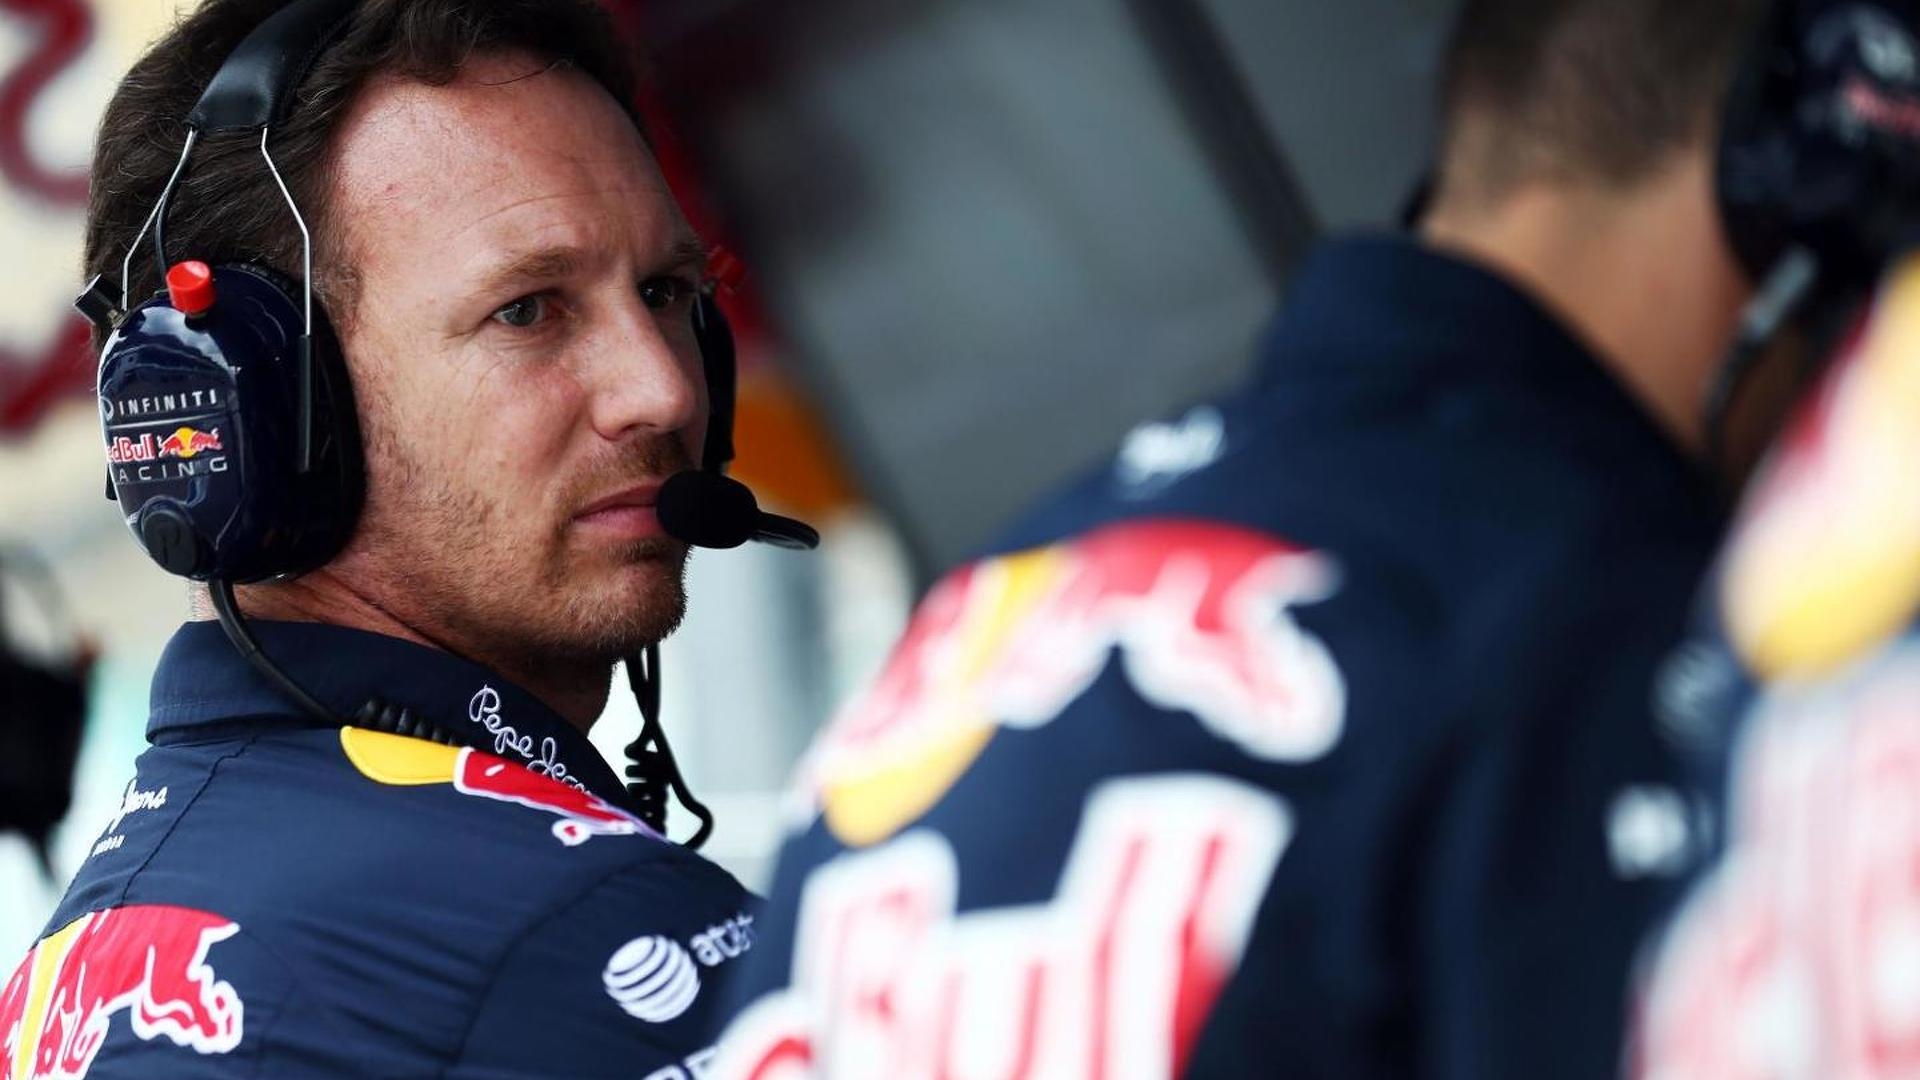 Horner plays down Red Bull quit threat